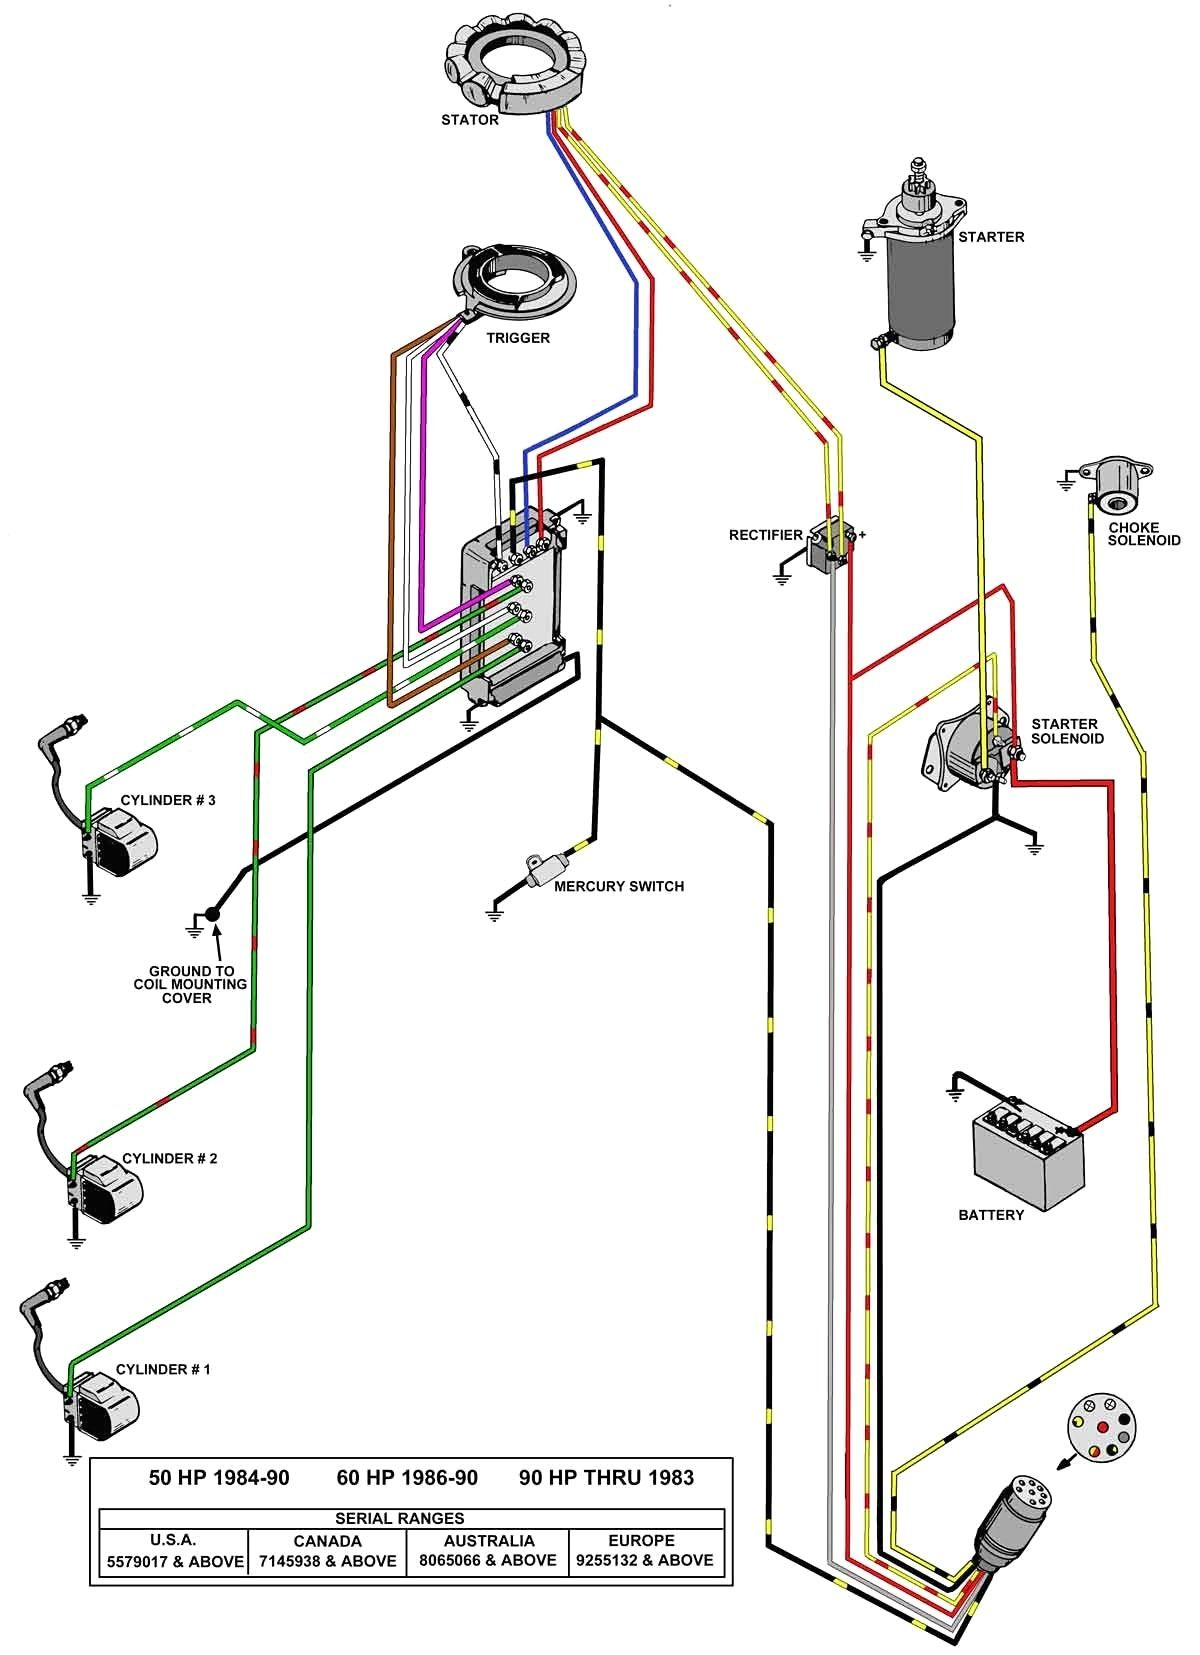 Ignition Switch Wiring Diagram For Smoker Craft Pontoon Boat on